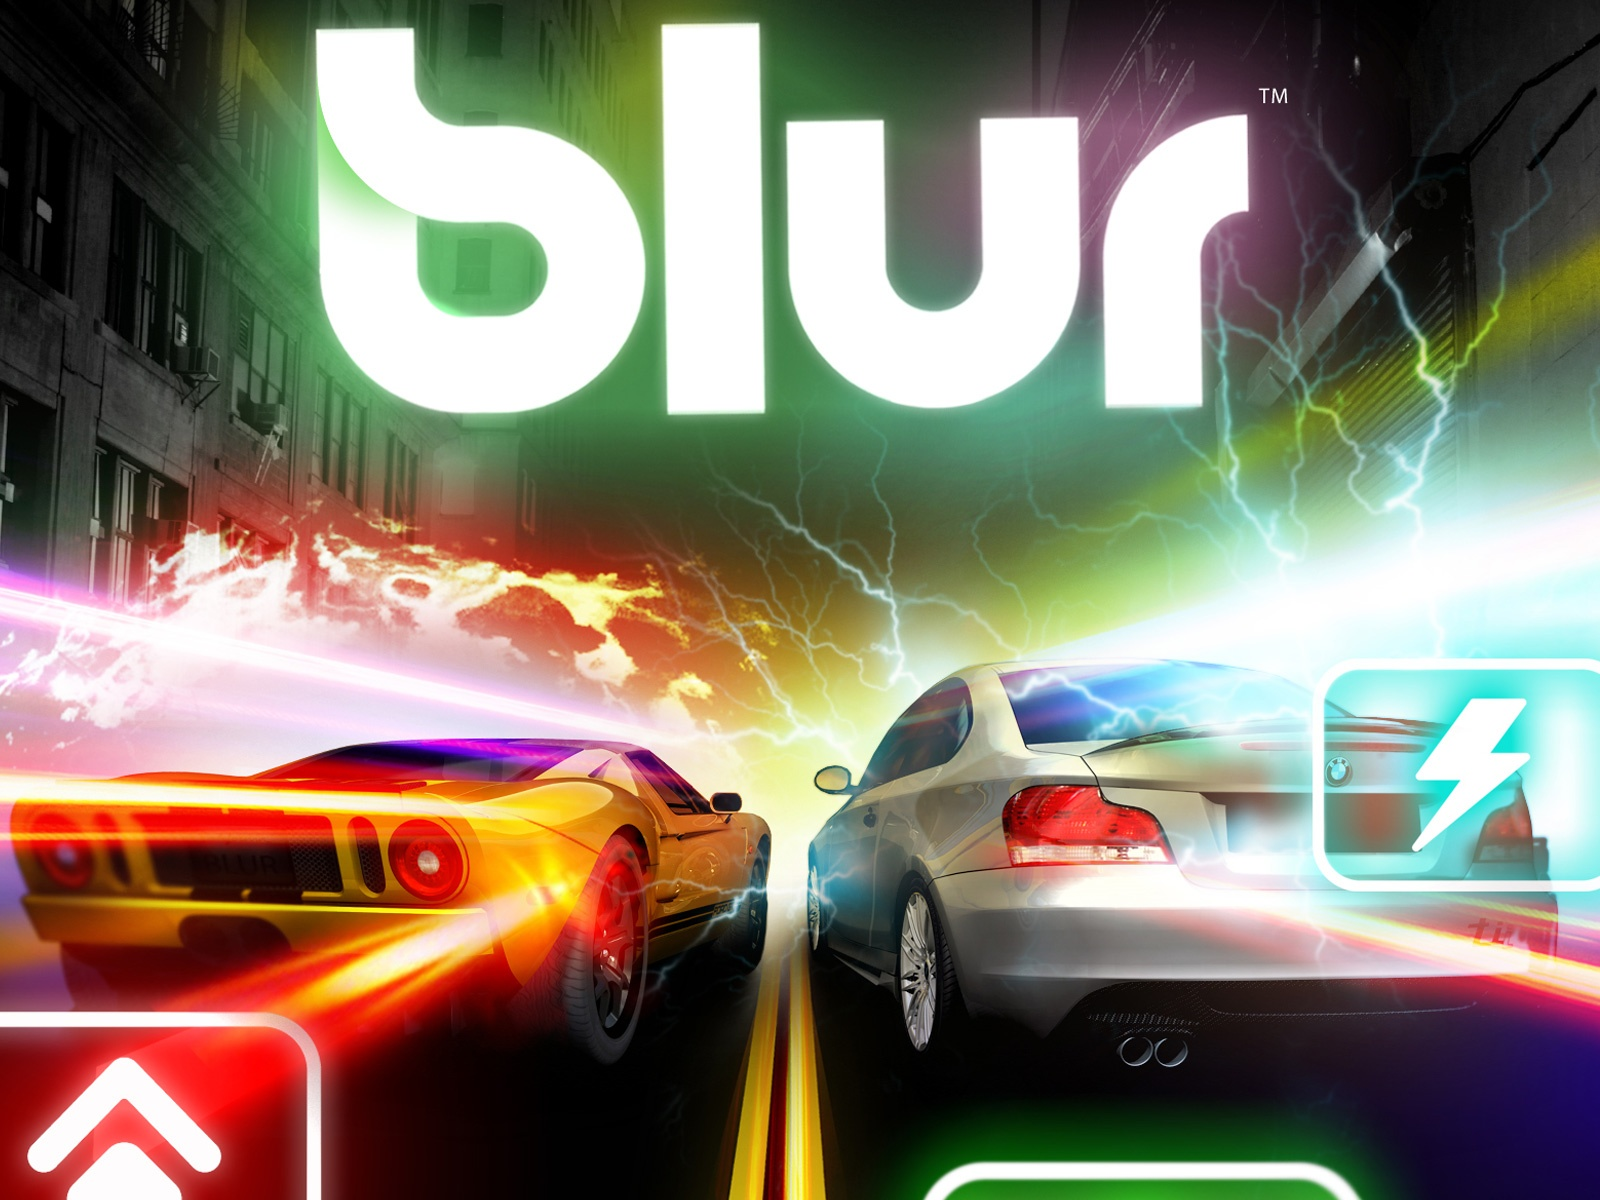 Blur Game Xbox PS3 PC Wallpapers in jpg format for free download